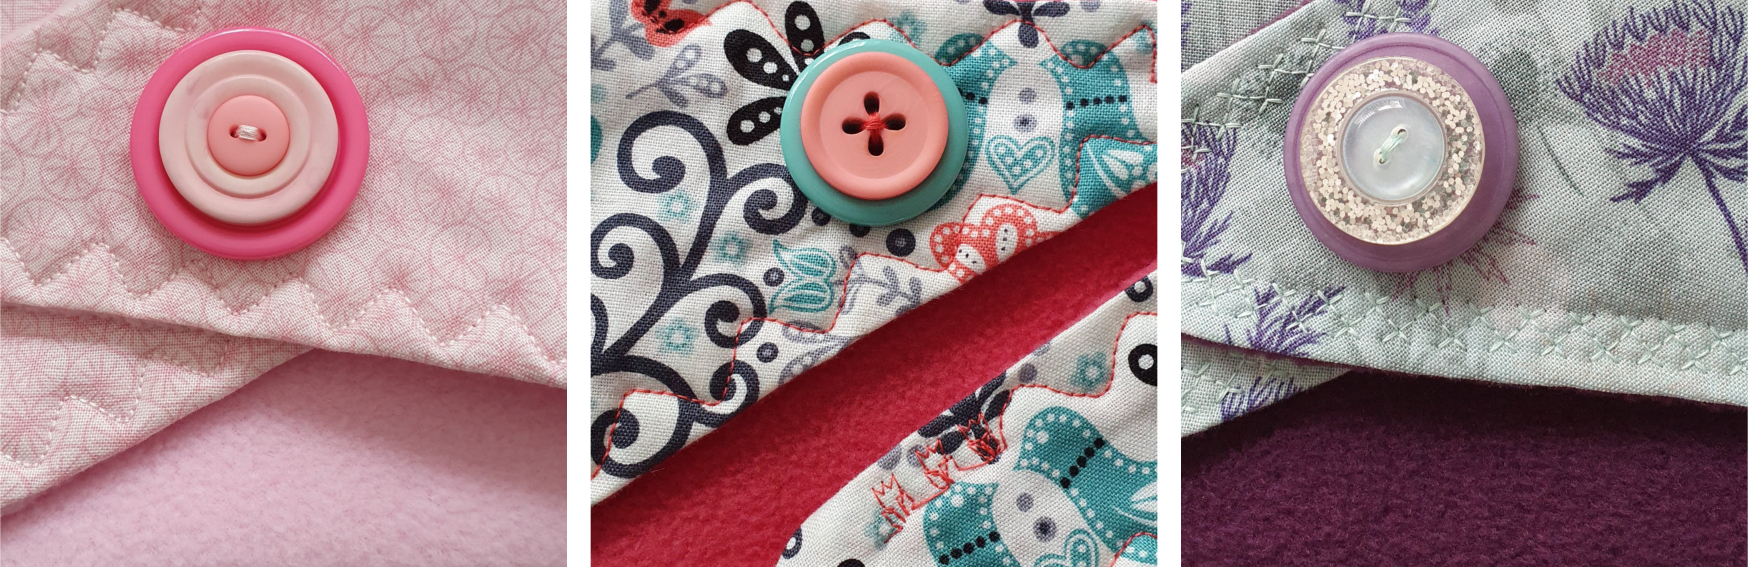 Button details on the scarves